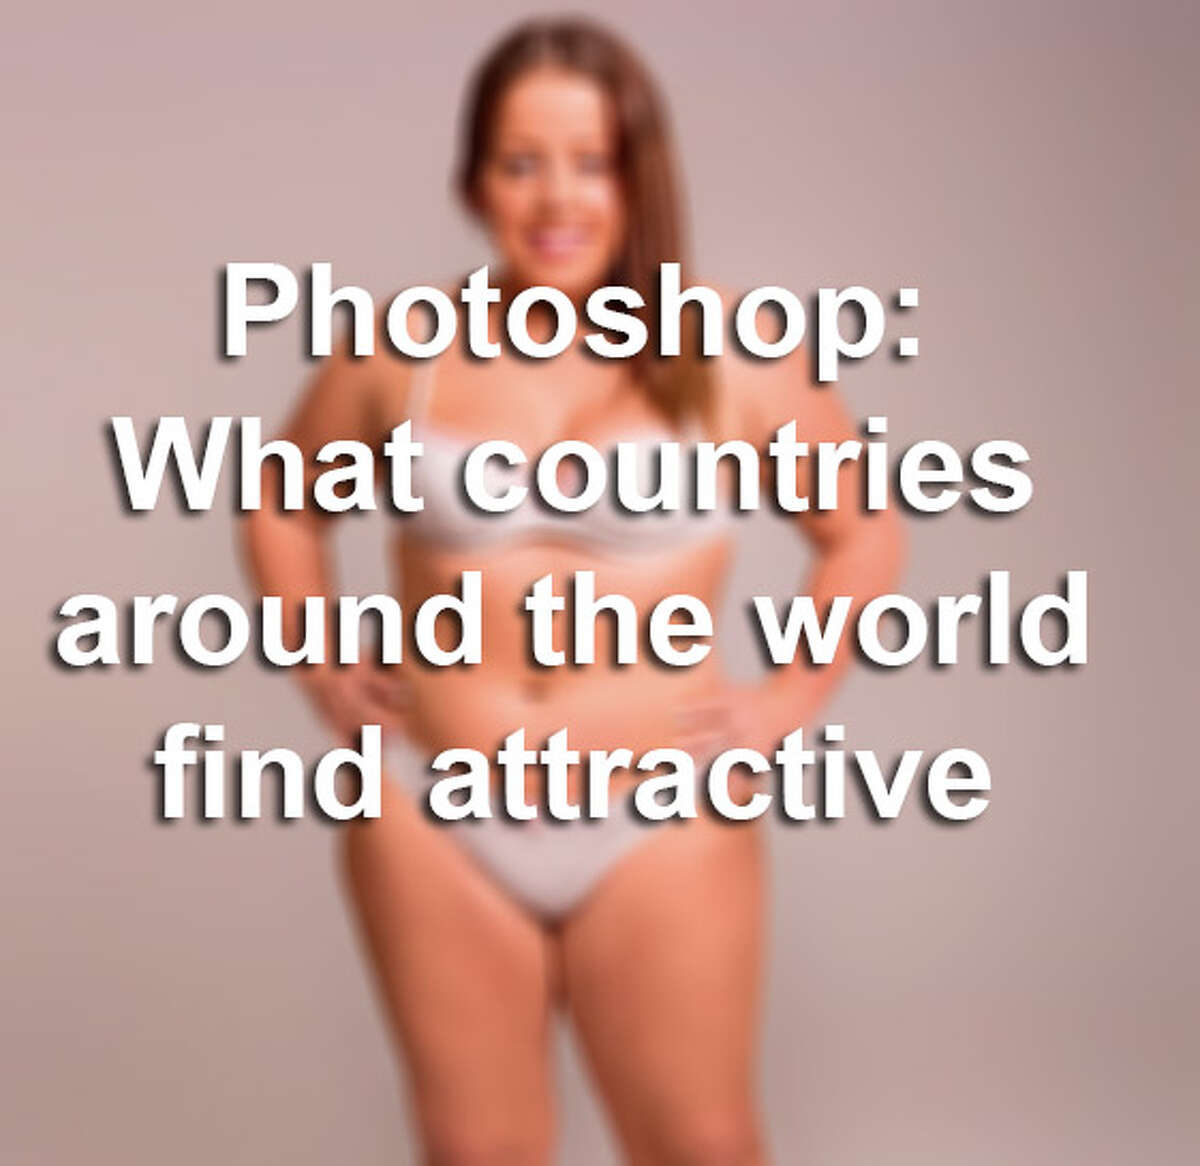 Click through the gallery to see what 18 different countries find attractive through Photoshops of one woman.